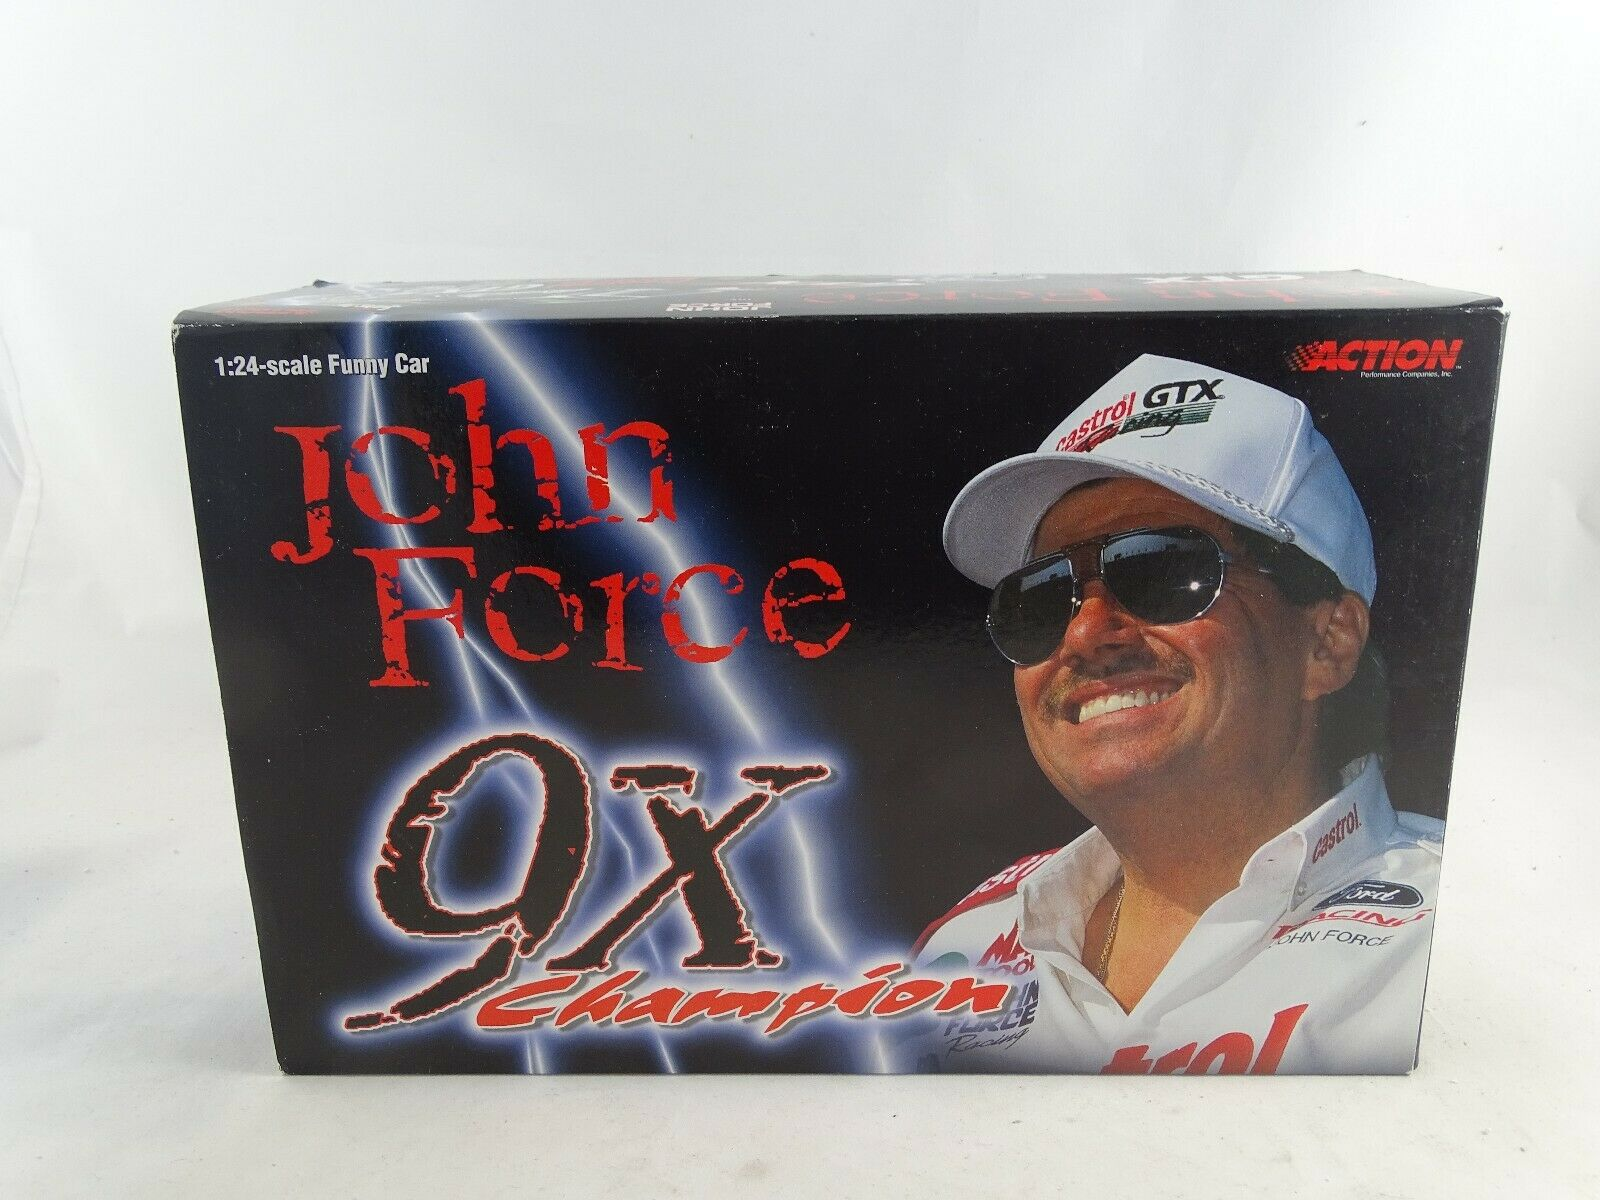 1 16 Action Collectables 2000 Mustang Funny Car Castrol GTX John Force LMTD EDT